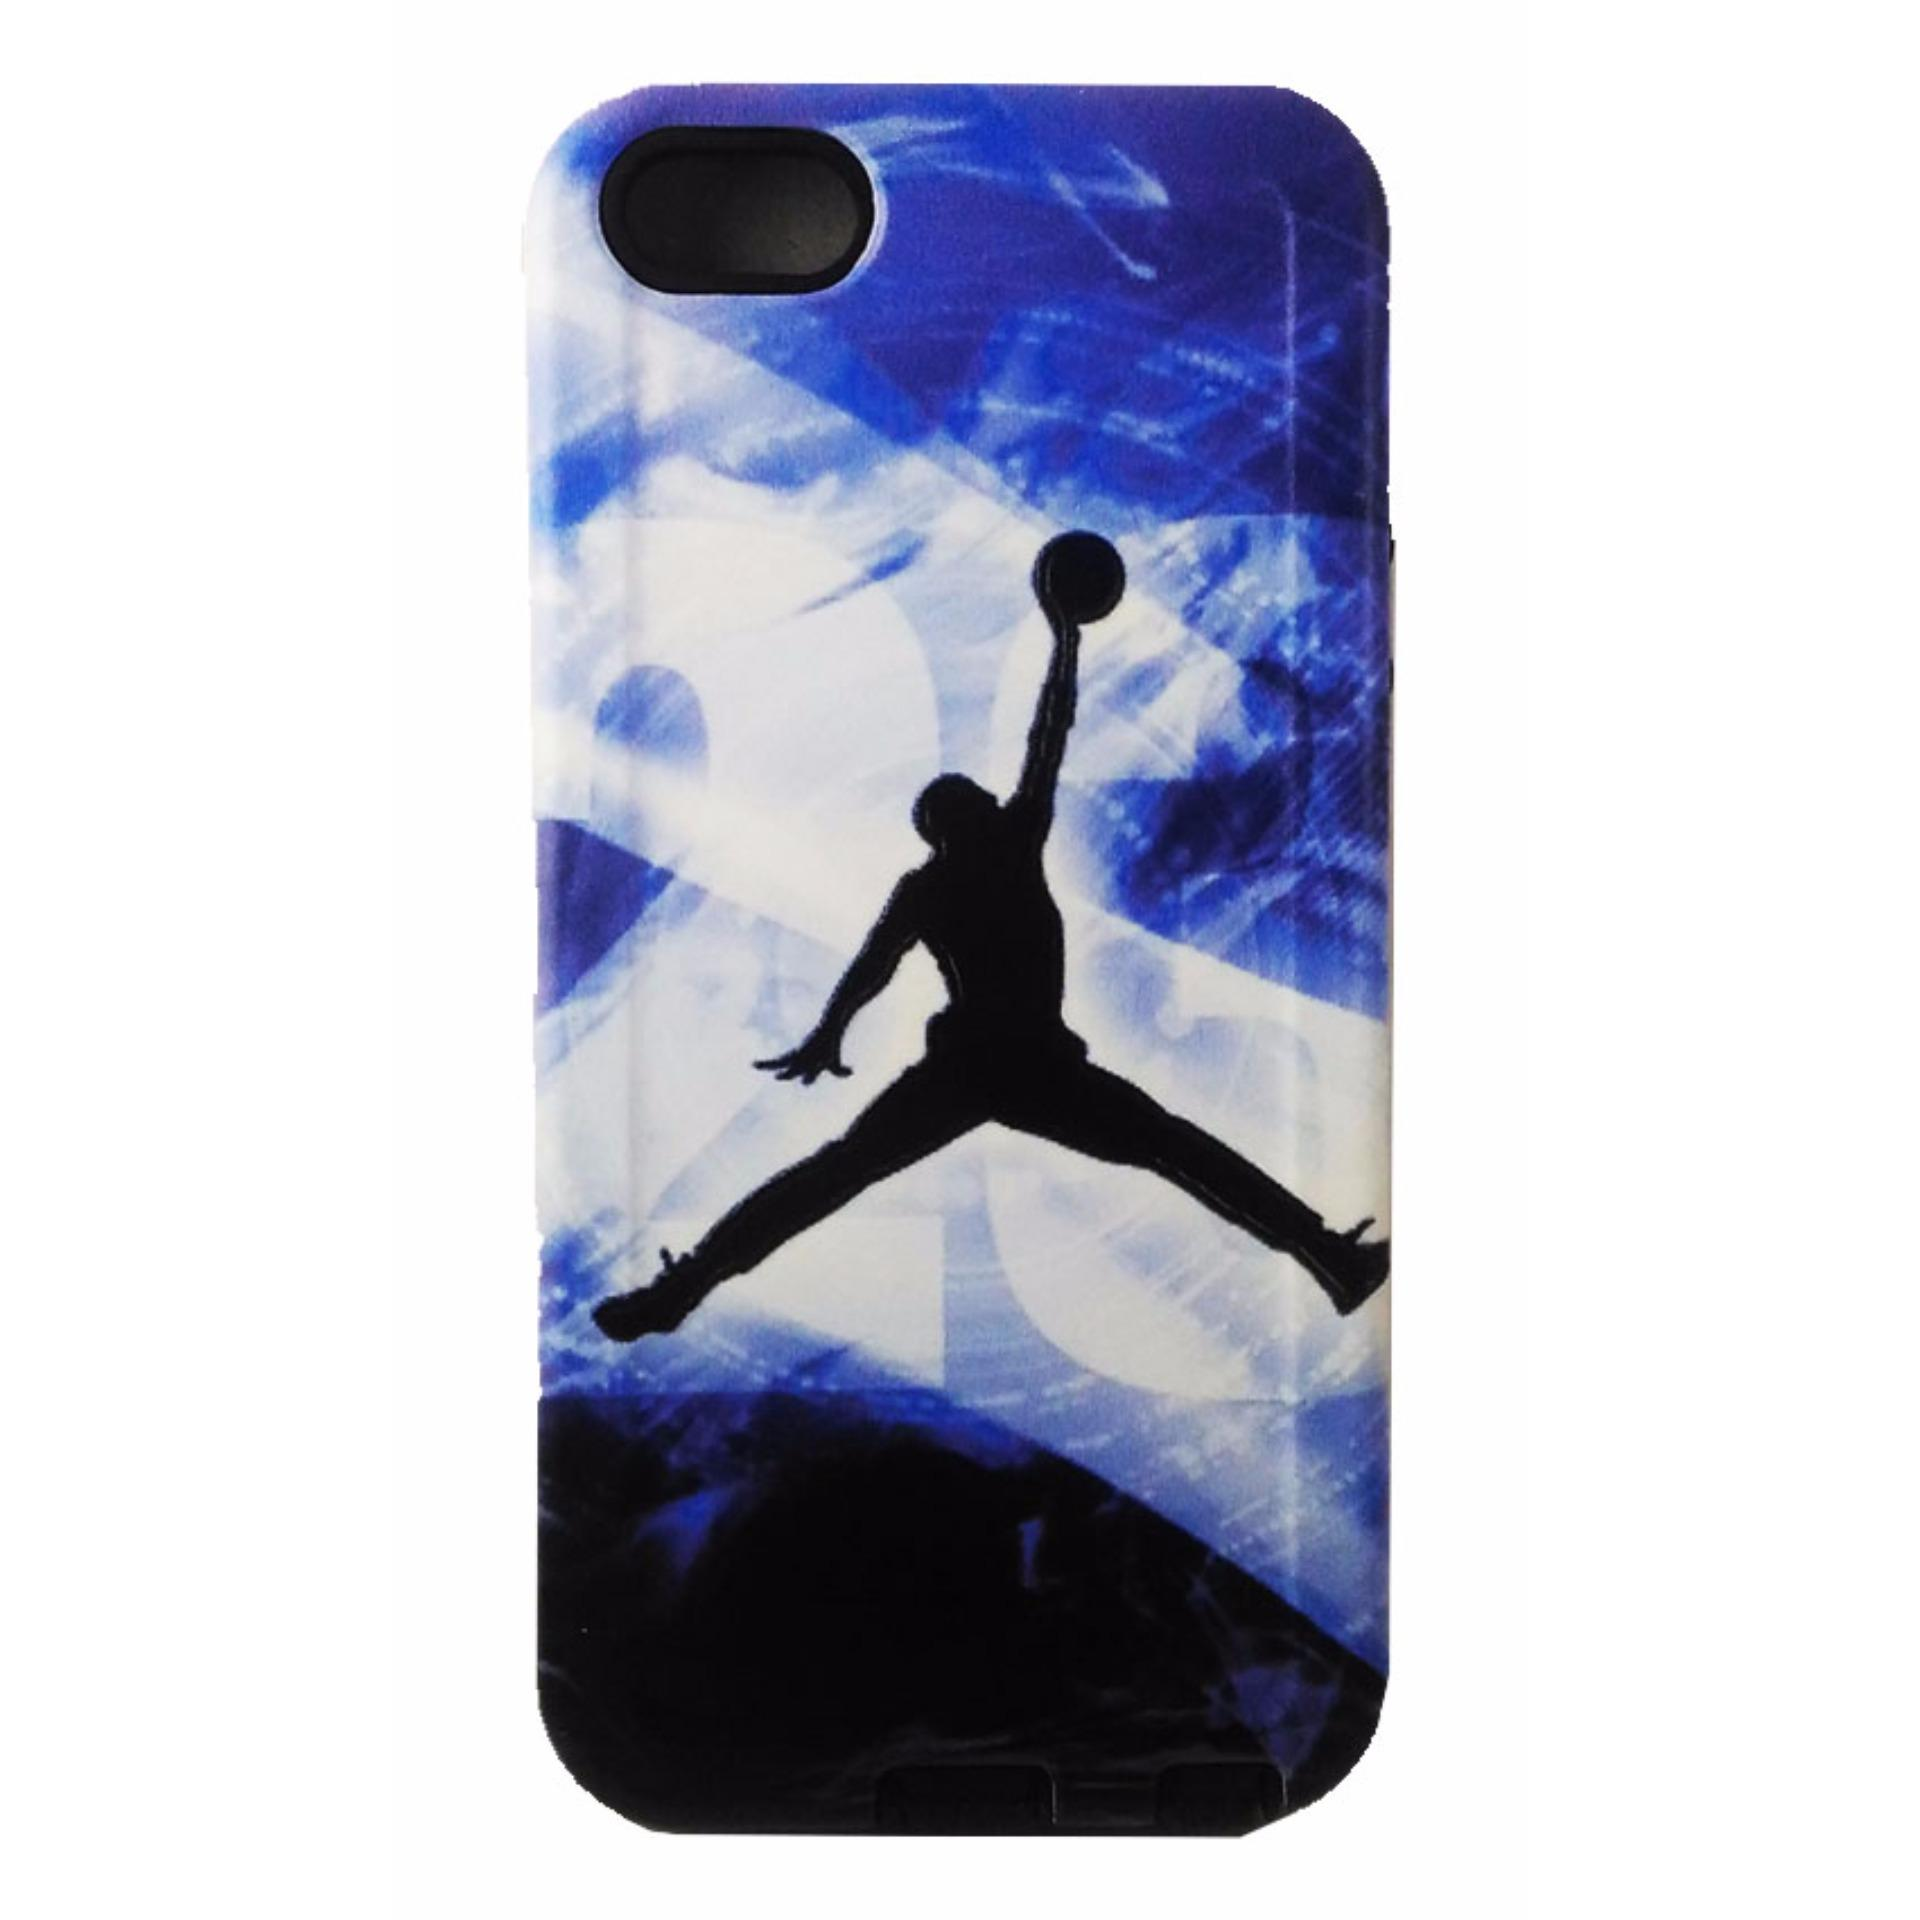 Michael Jordan Air Hard Back Cover for Iphone 5/ 5s